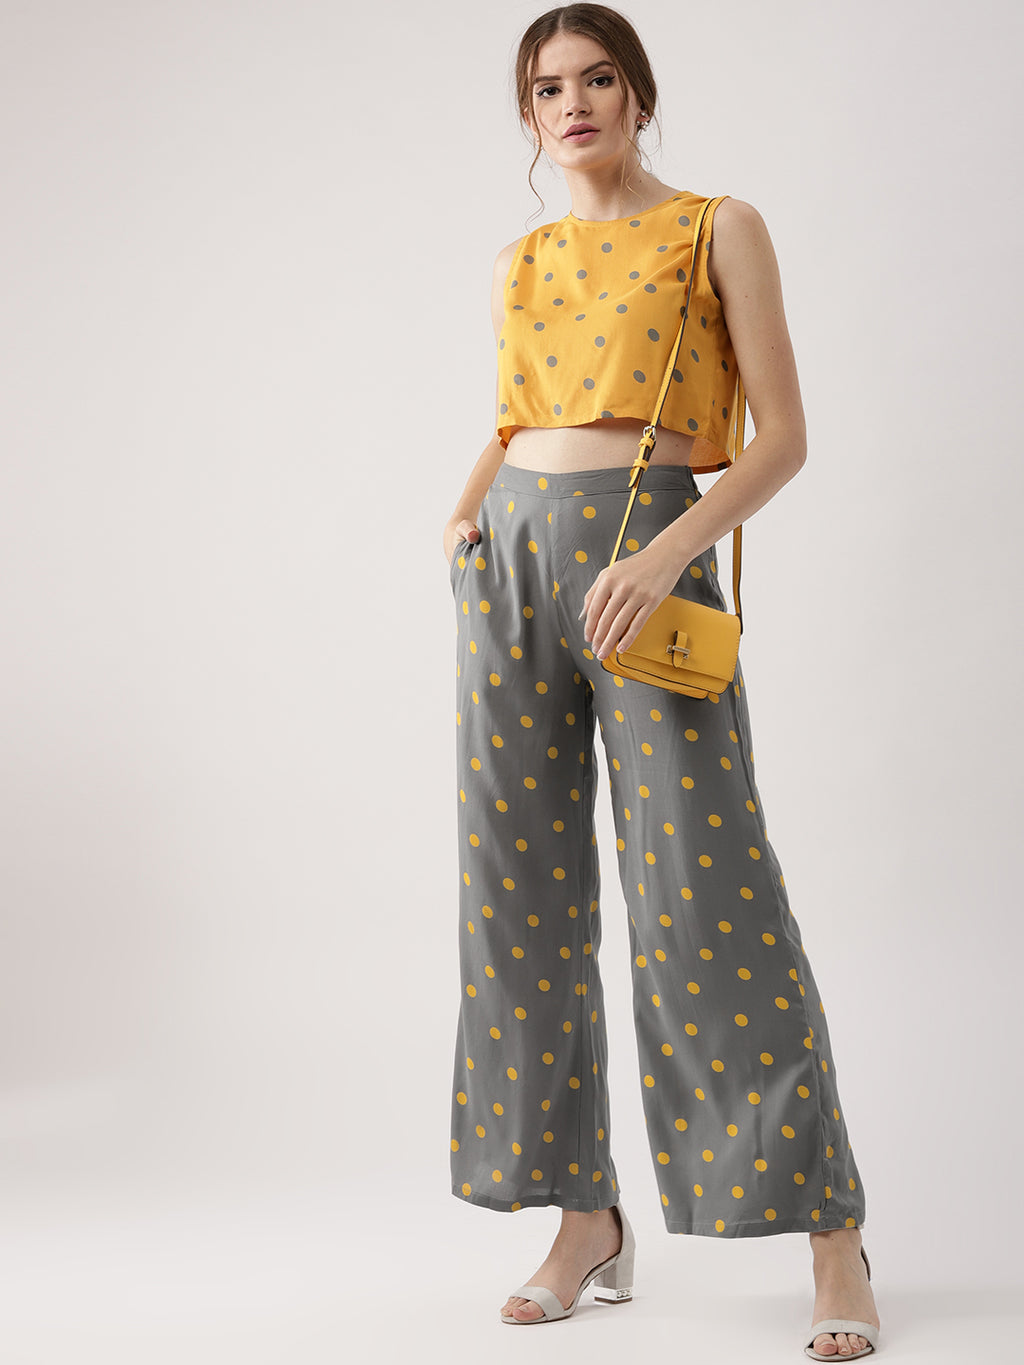 Women Yellow & Grey Printed Crop Top with Palazzos | Znx4ever.com